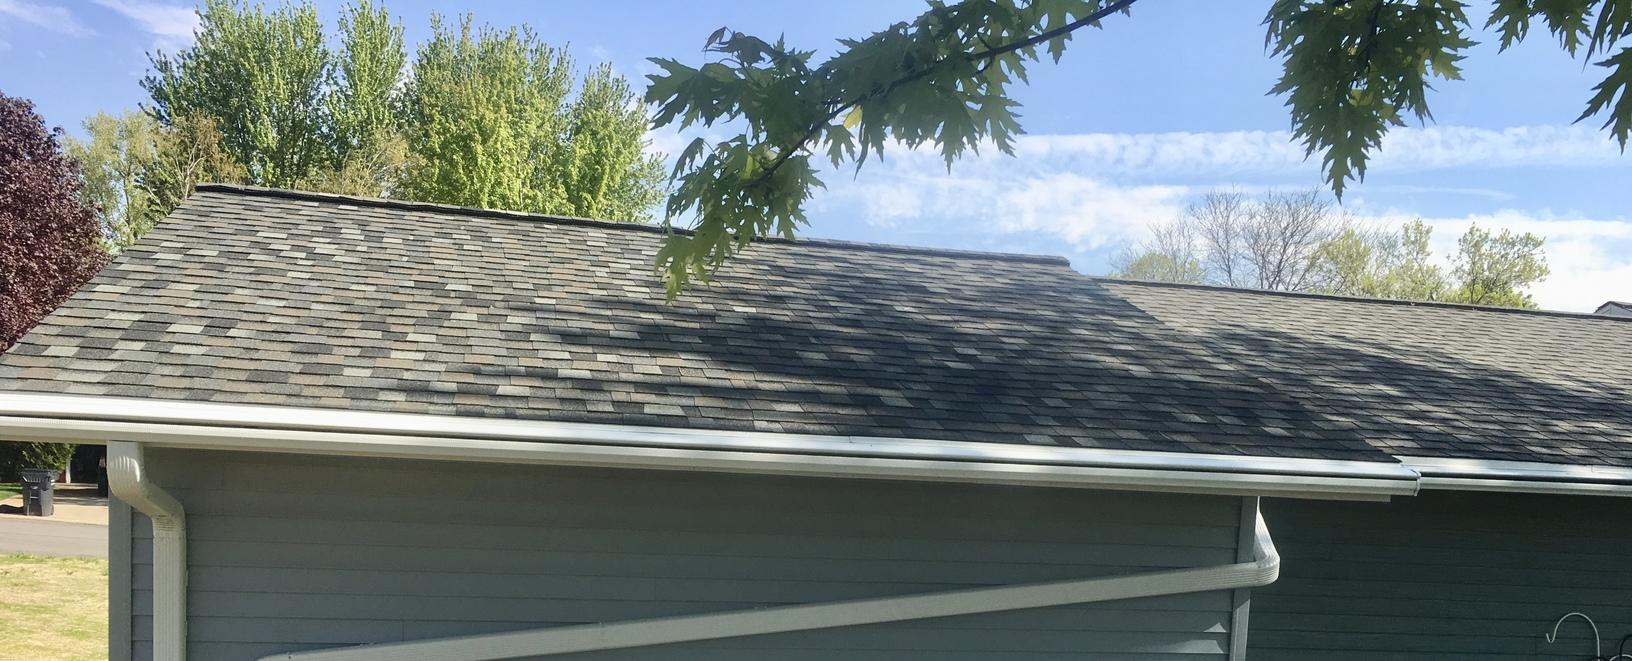 Sun Prairie LeafGuard and GAF Roof Install - After Photo